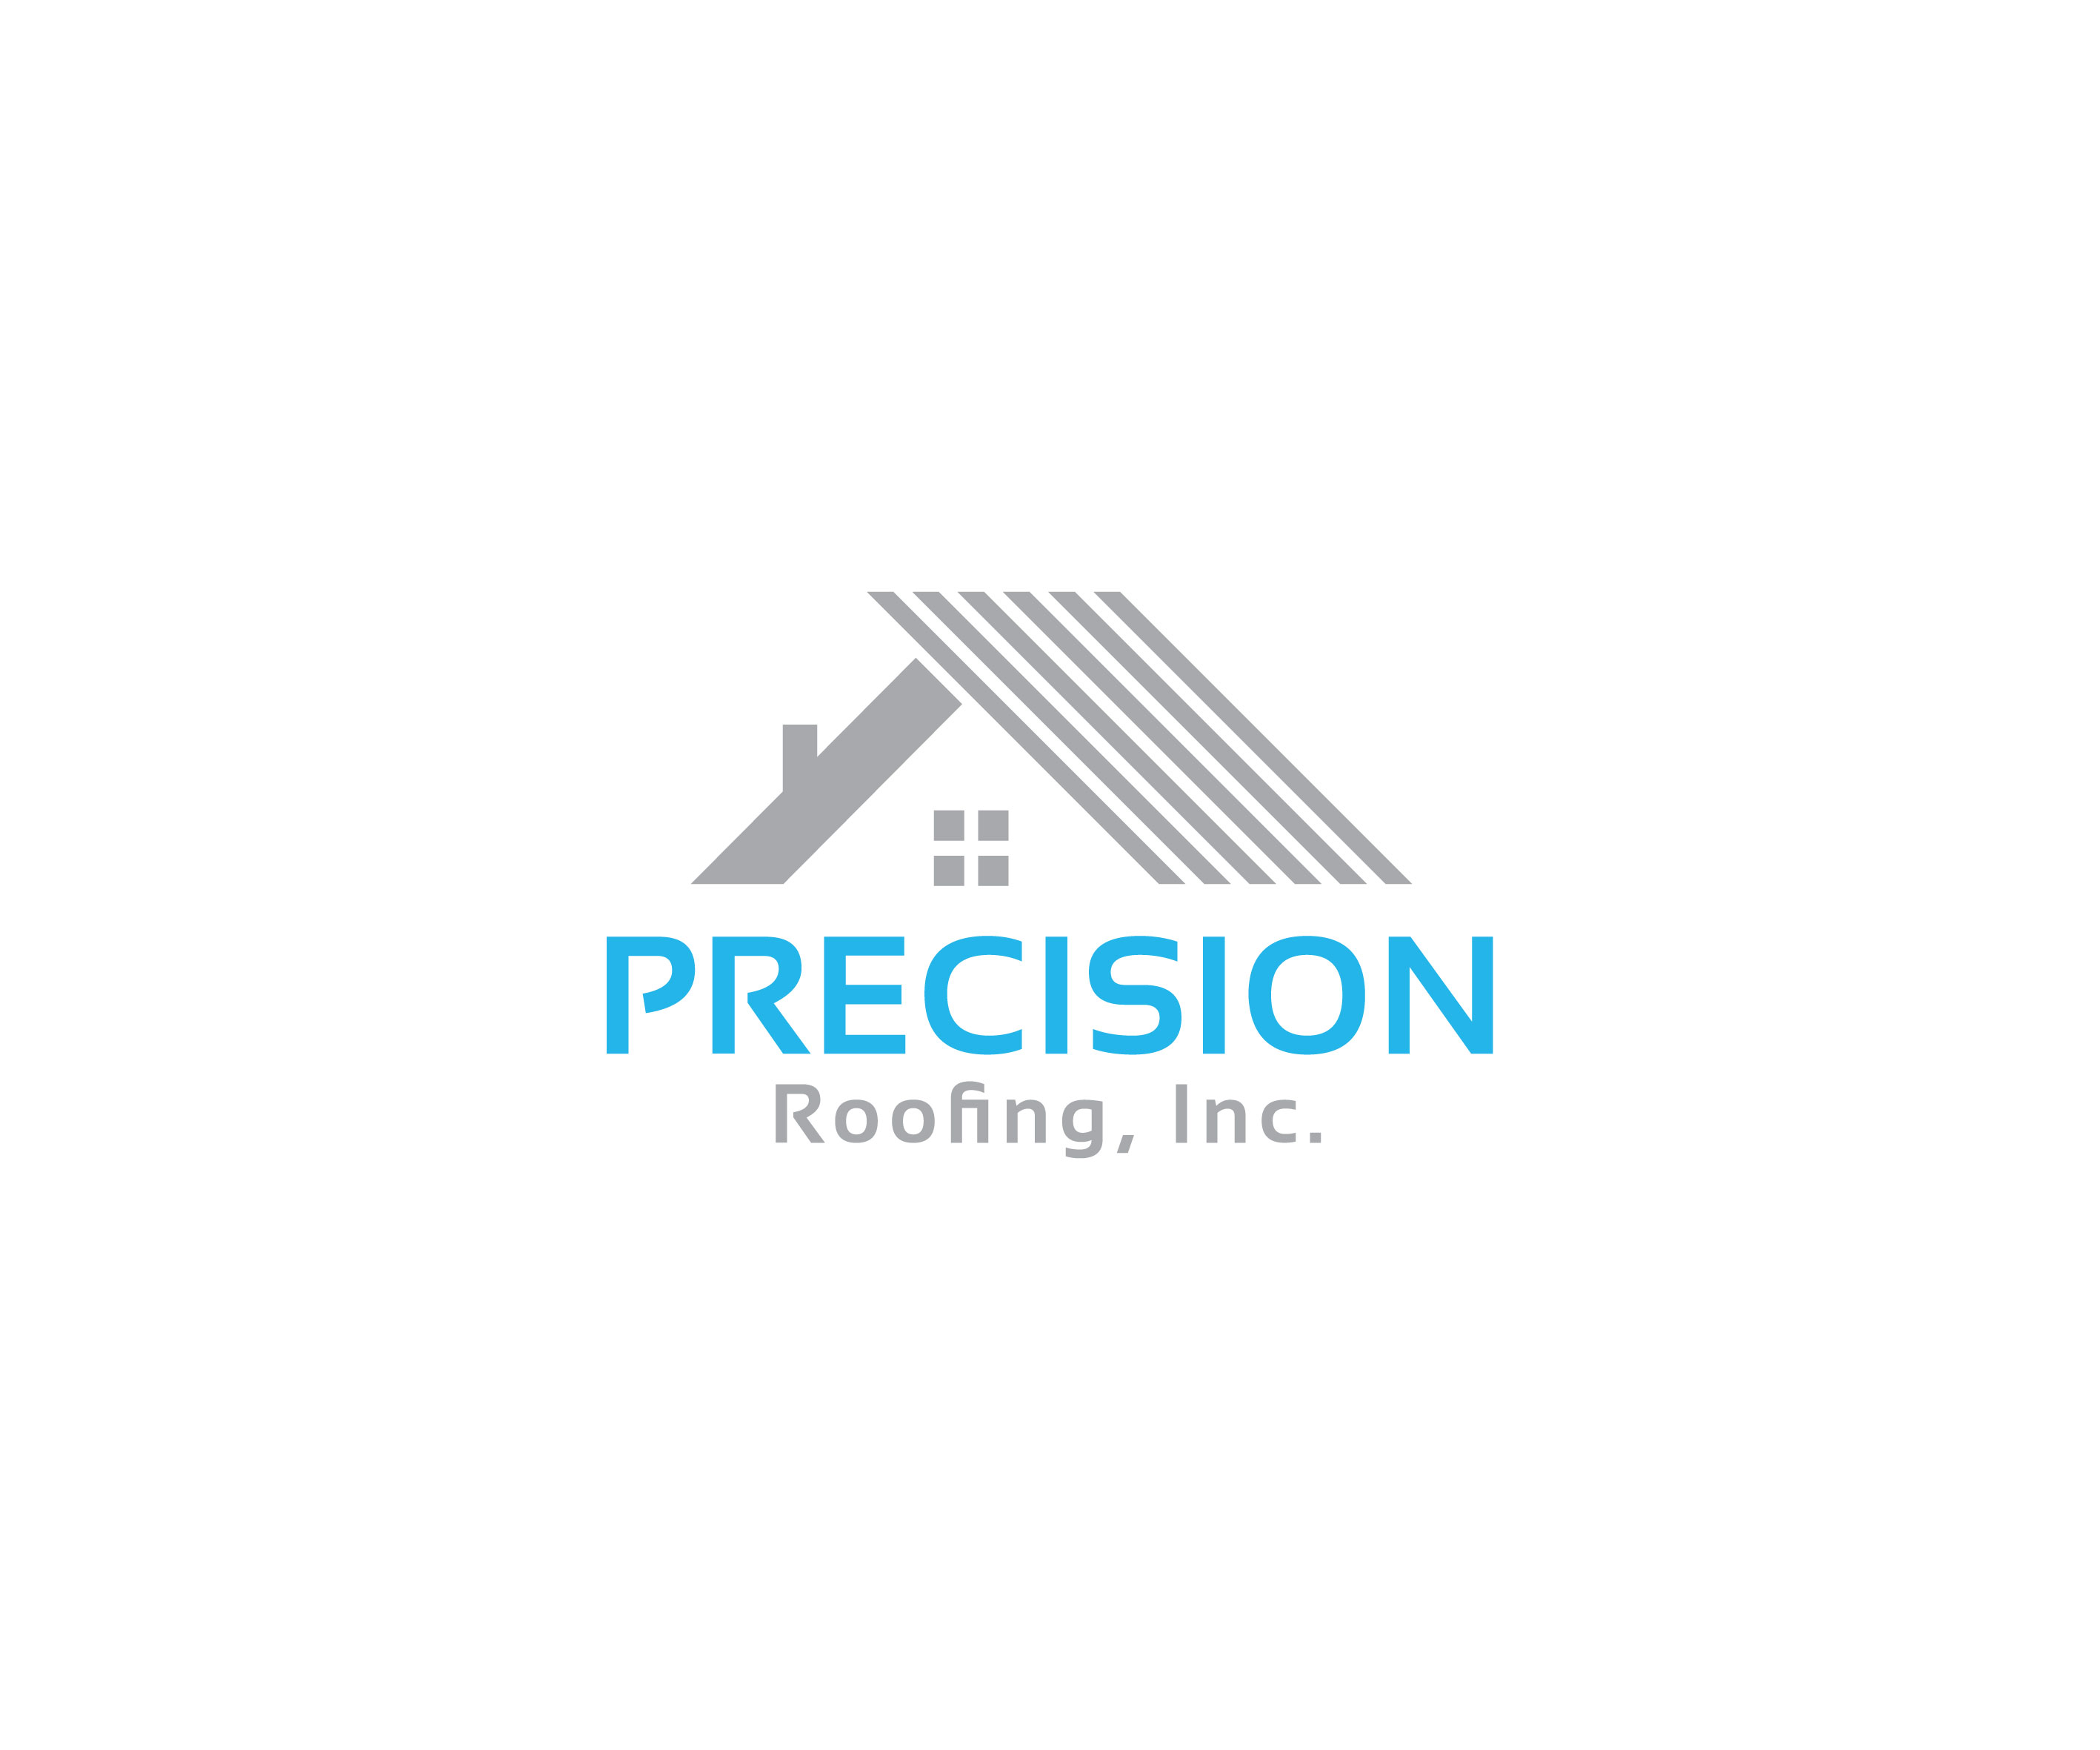 sc 1 th 205 & Precision Roofing Inc. memphite.com